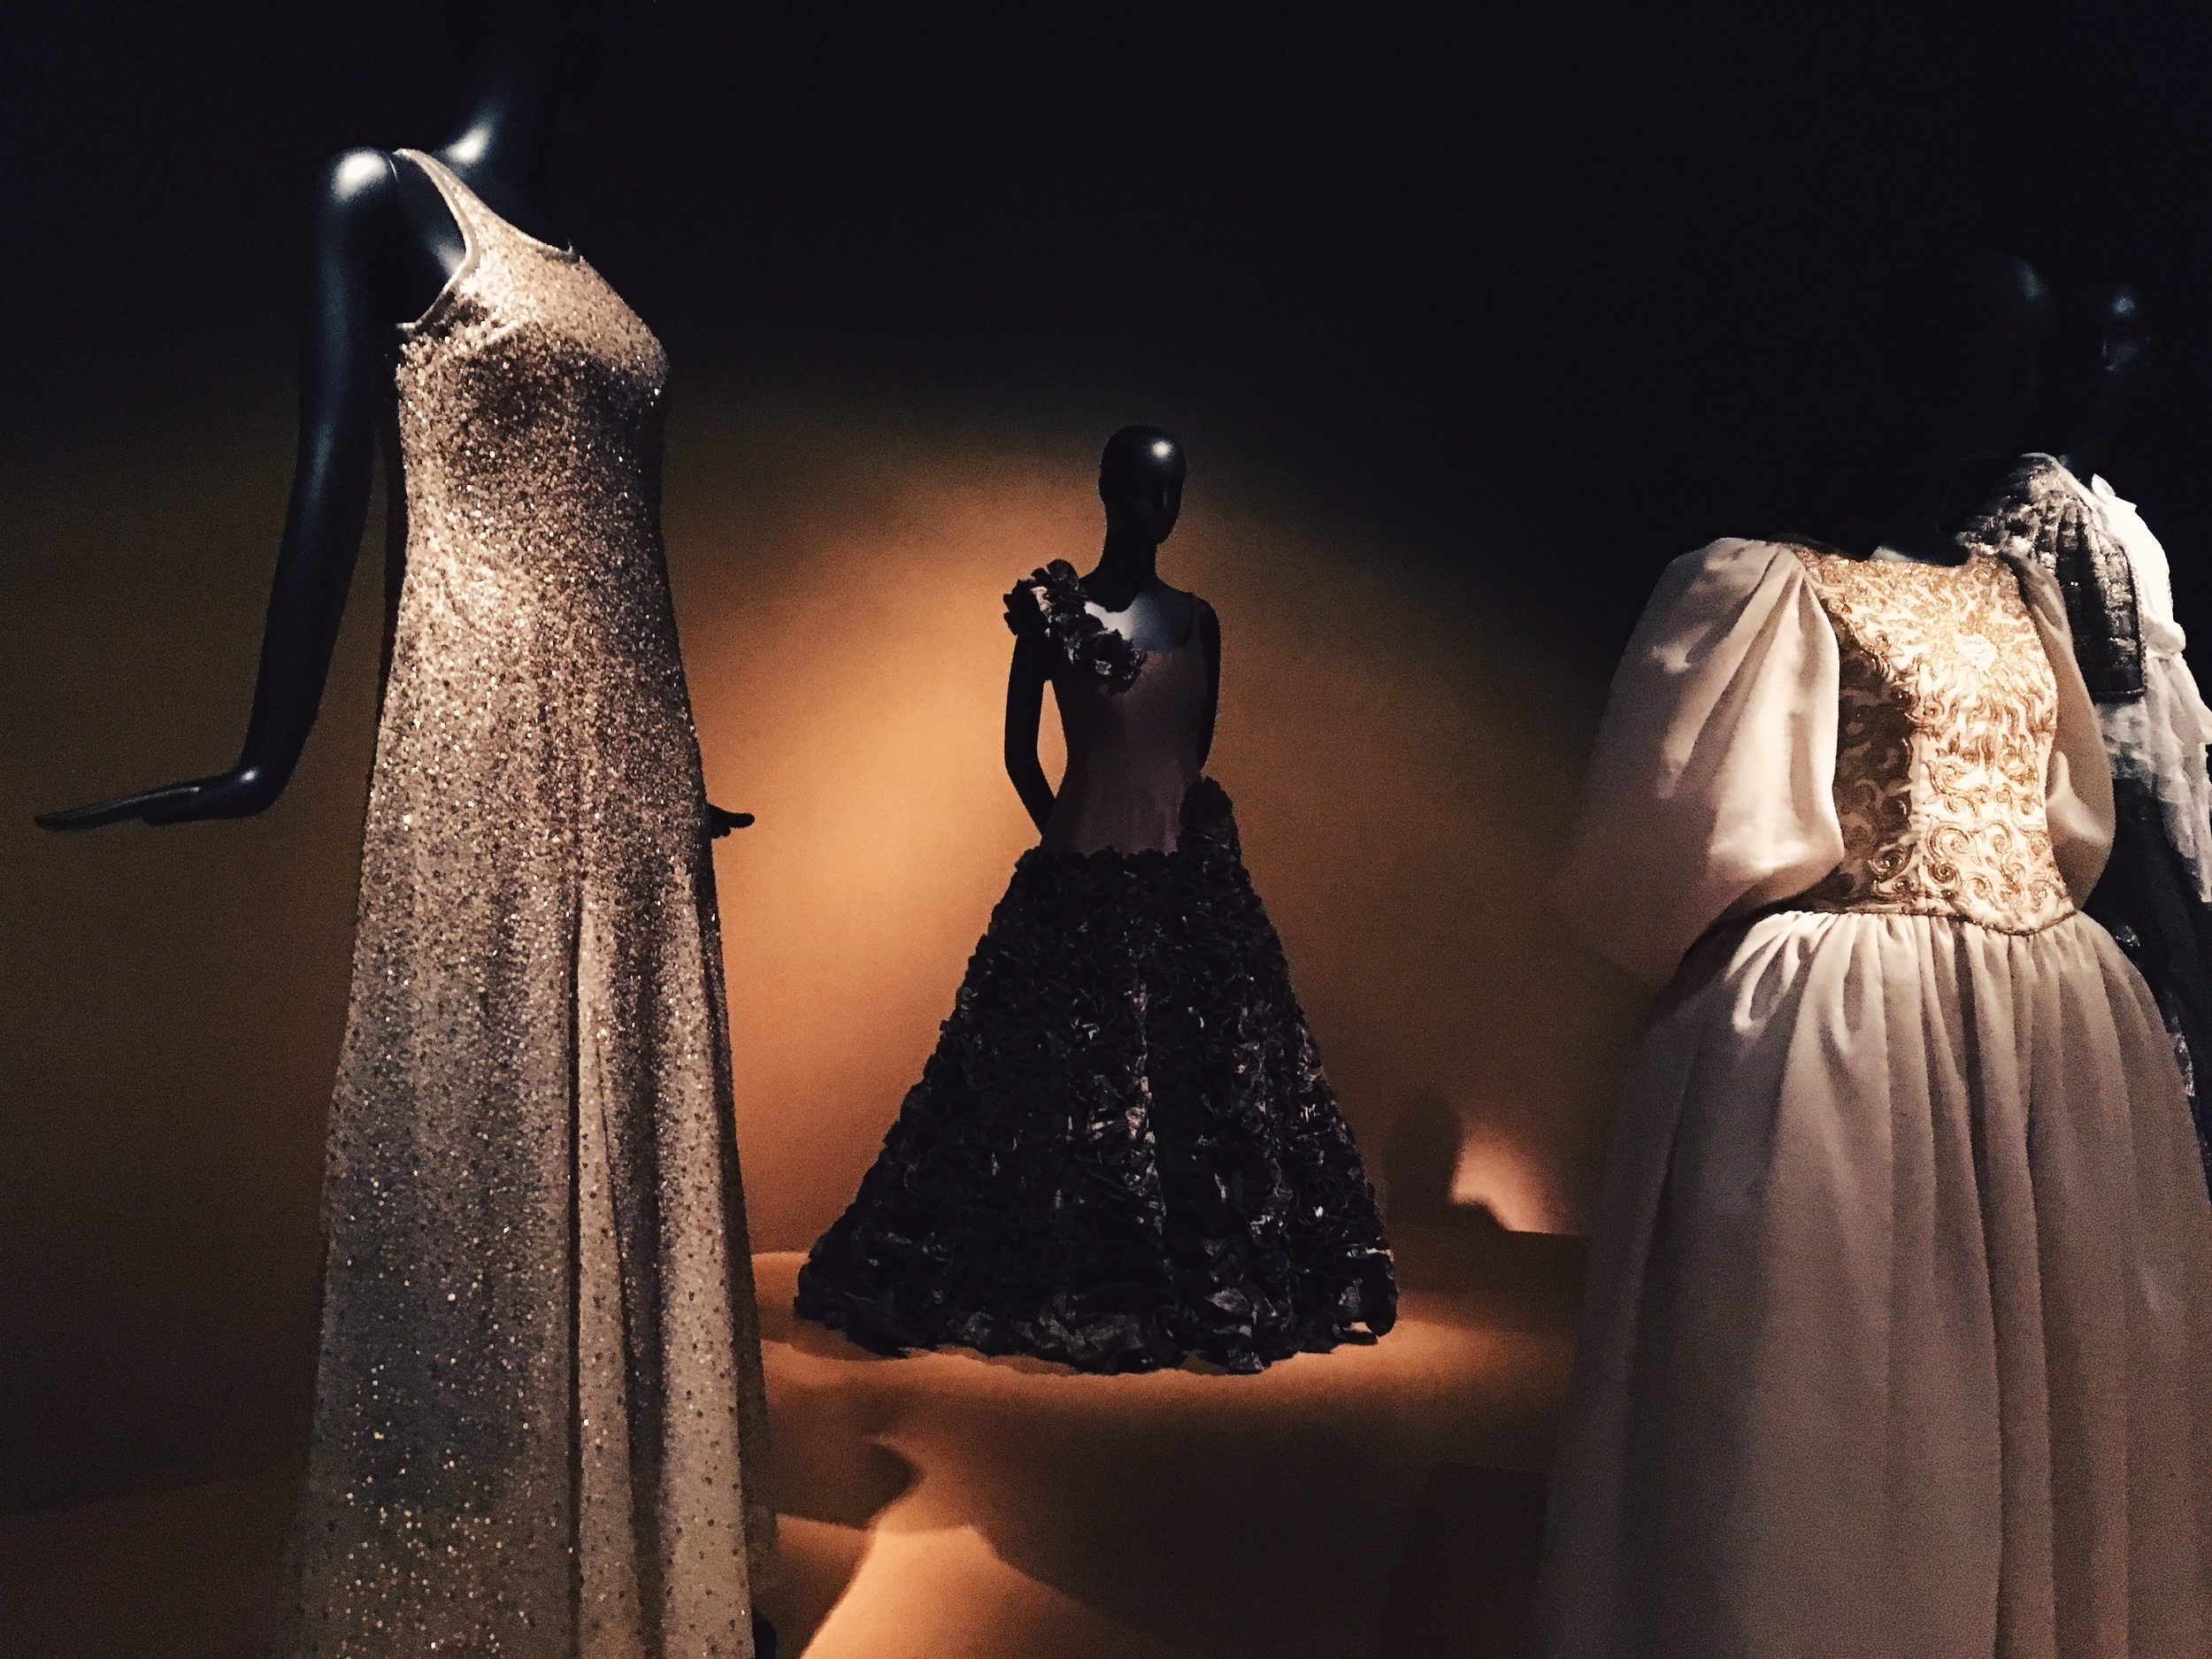 The silver sequined gown on the left was worn by former First Lady Laura Bush